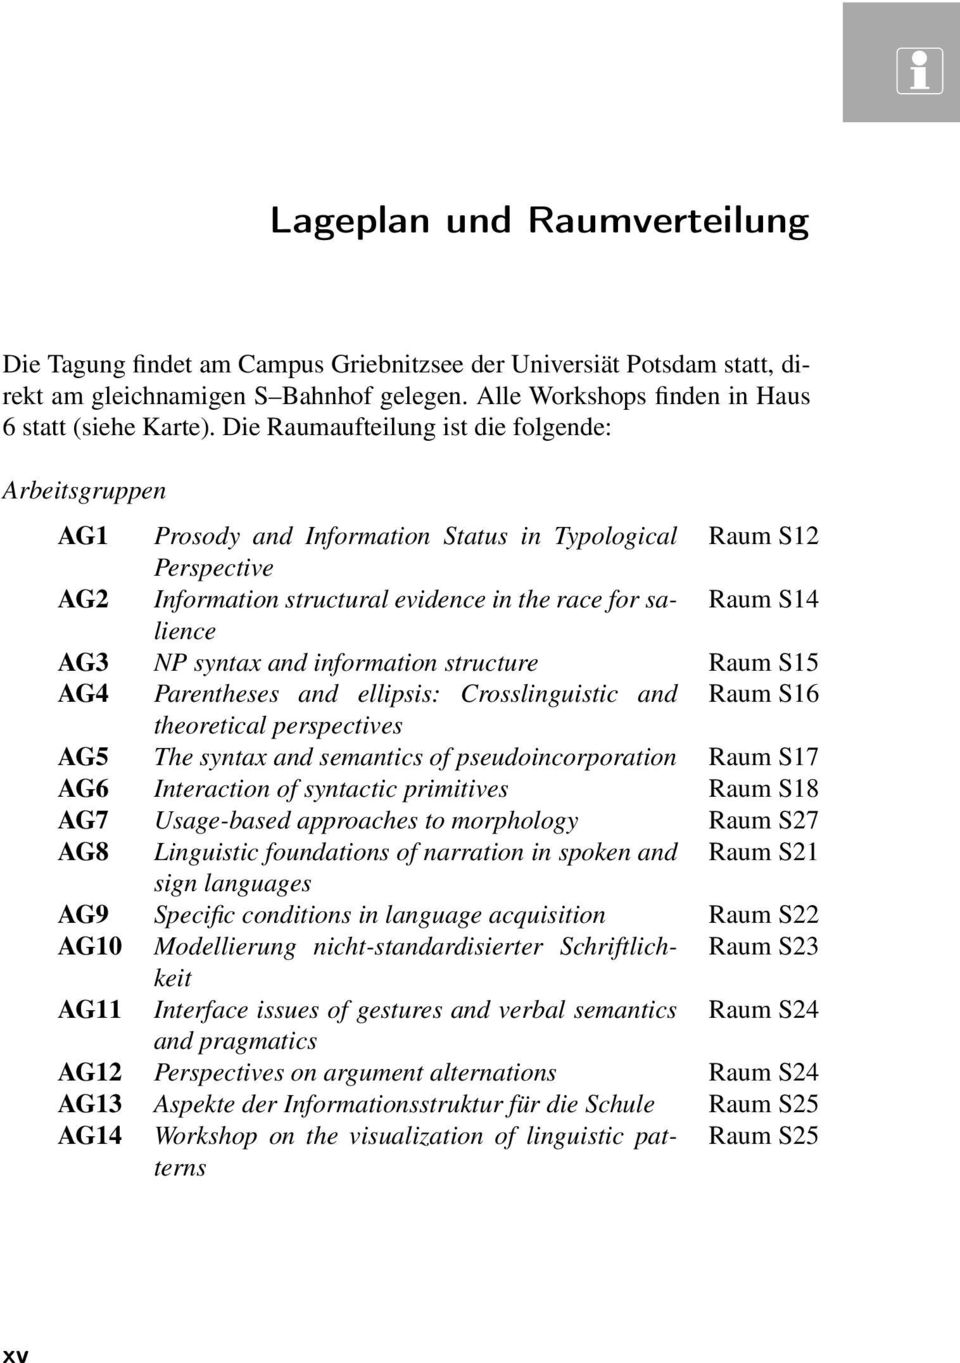 syntax and information structure Raum S15 AG4 Parentheses and ellipsis:  Crosslinguistic and Raum S16 theoretical